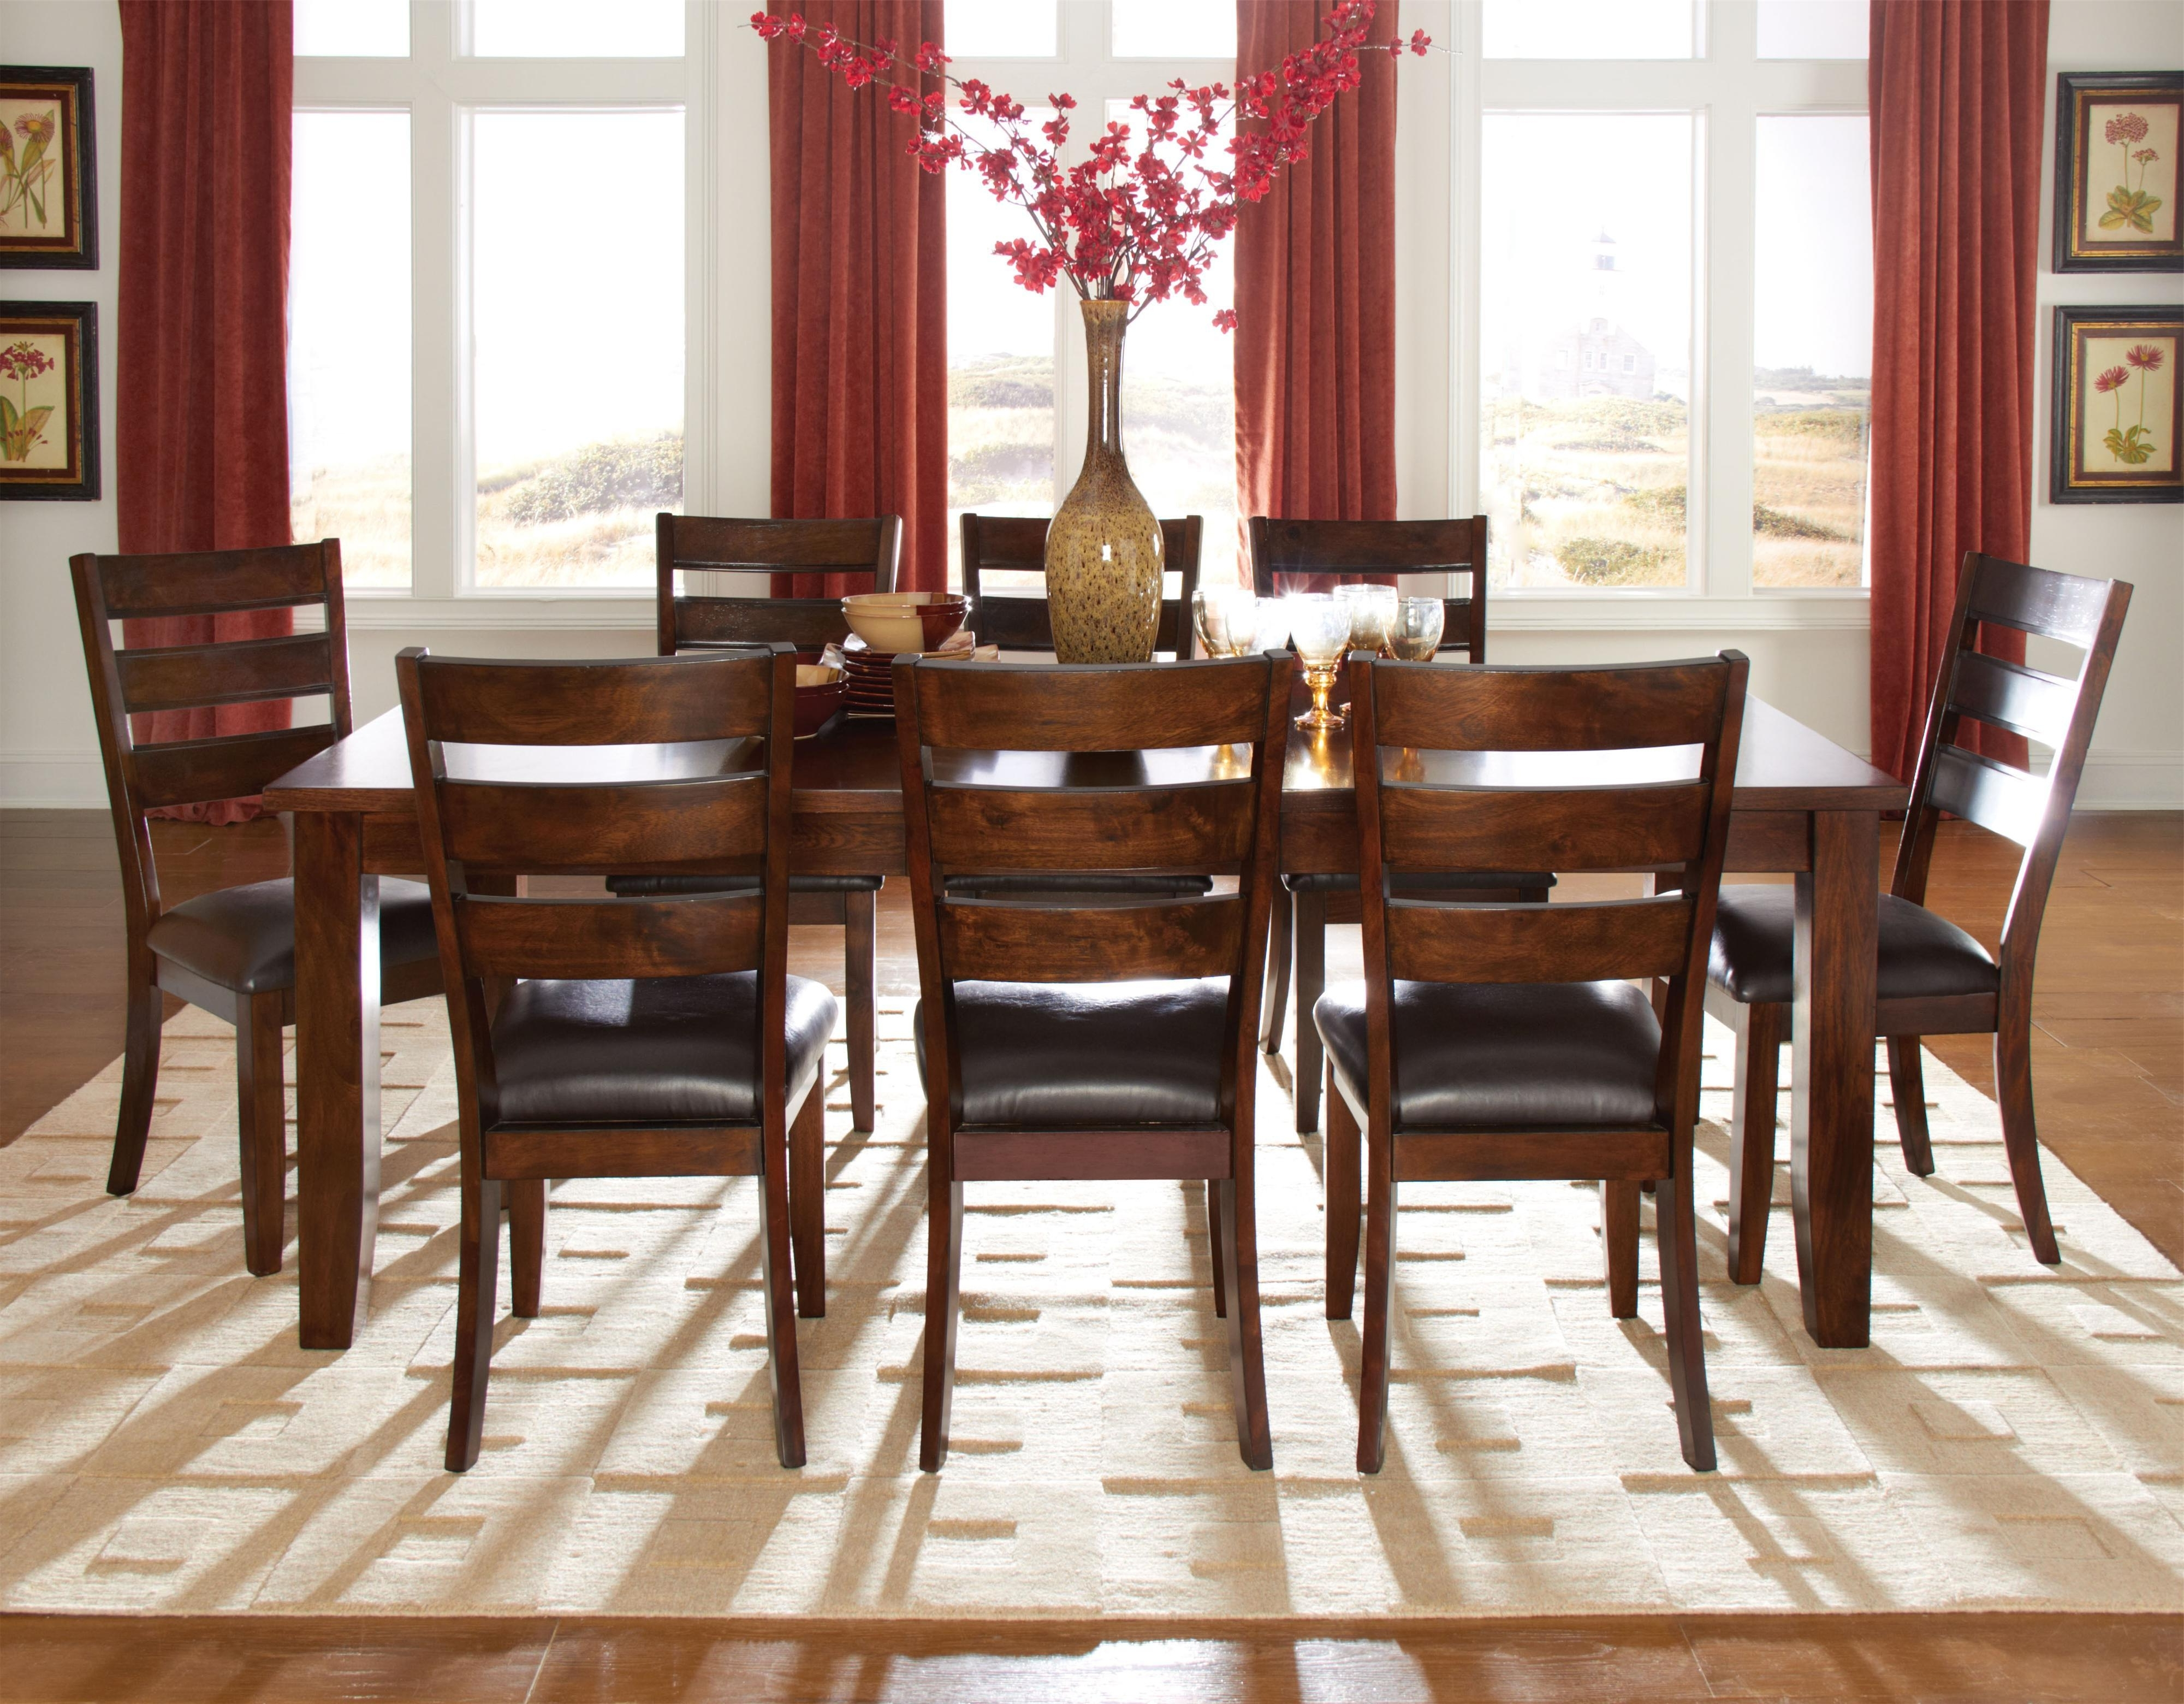 Famous Cheery Caira Piece Extension Set Back Chairs Caira Piece Extension Regarding Walden 9 Piece Extension Dining Sets (View 11 of 25)